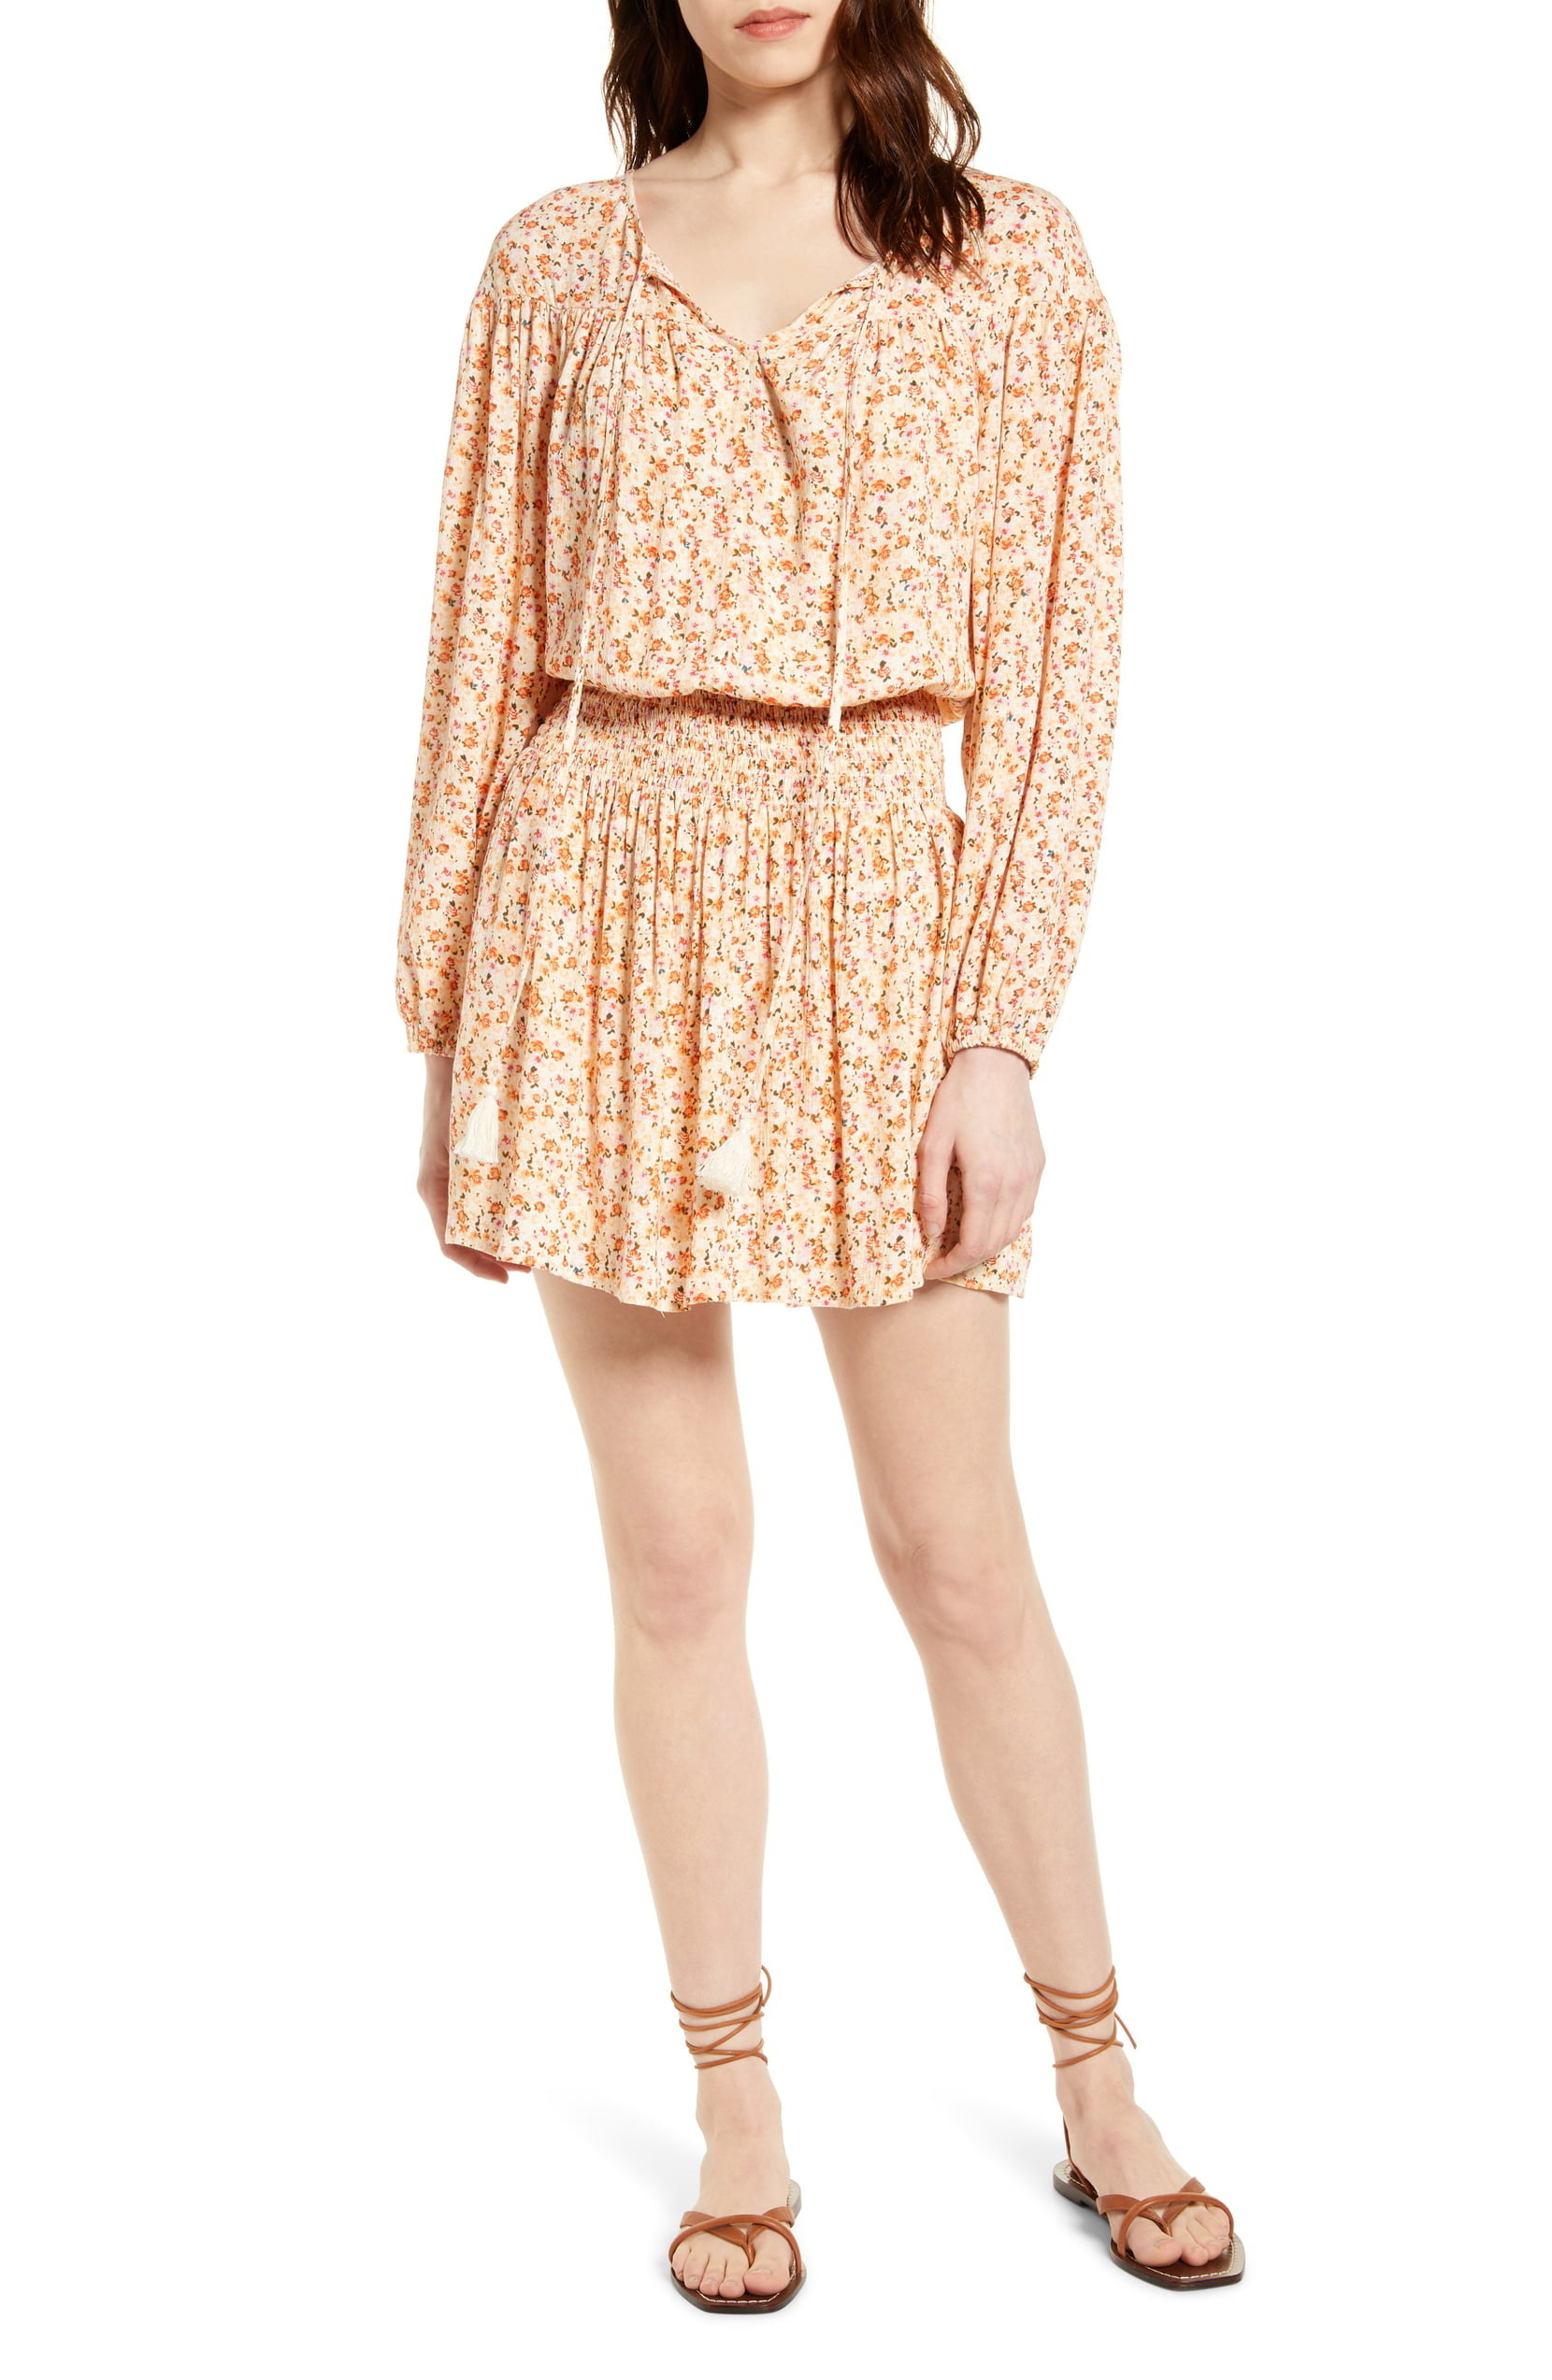 A model wearing the yellowish floral smocked waist dress — it comes down to their mid thigh, a little before the knees